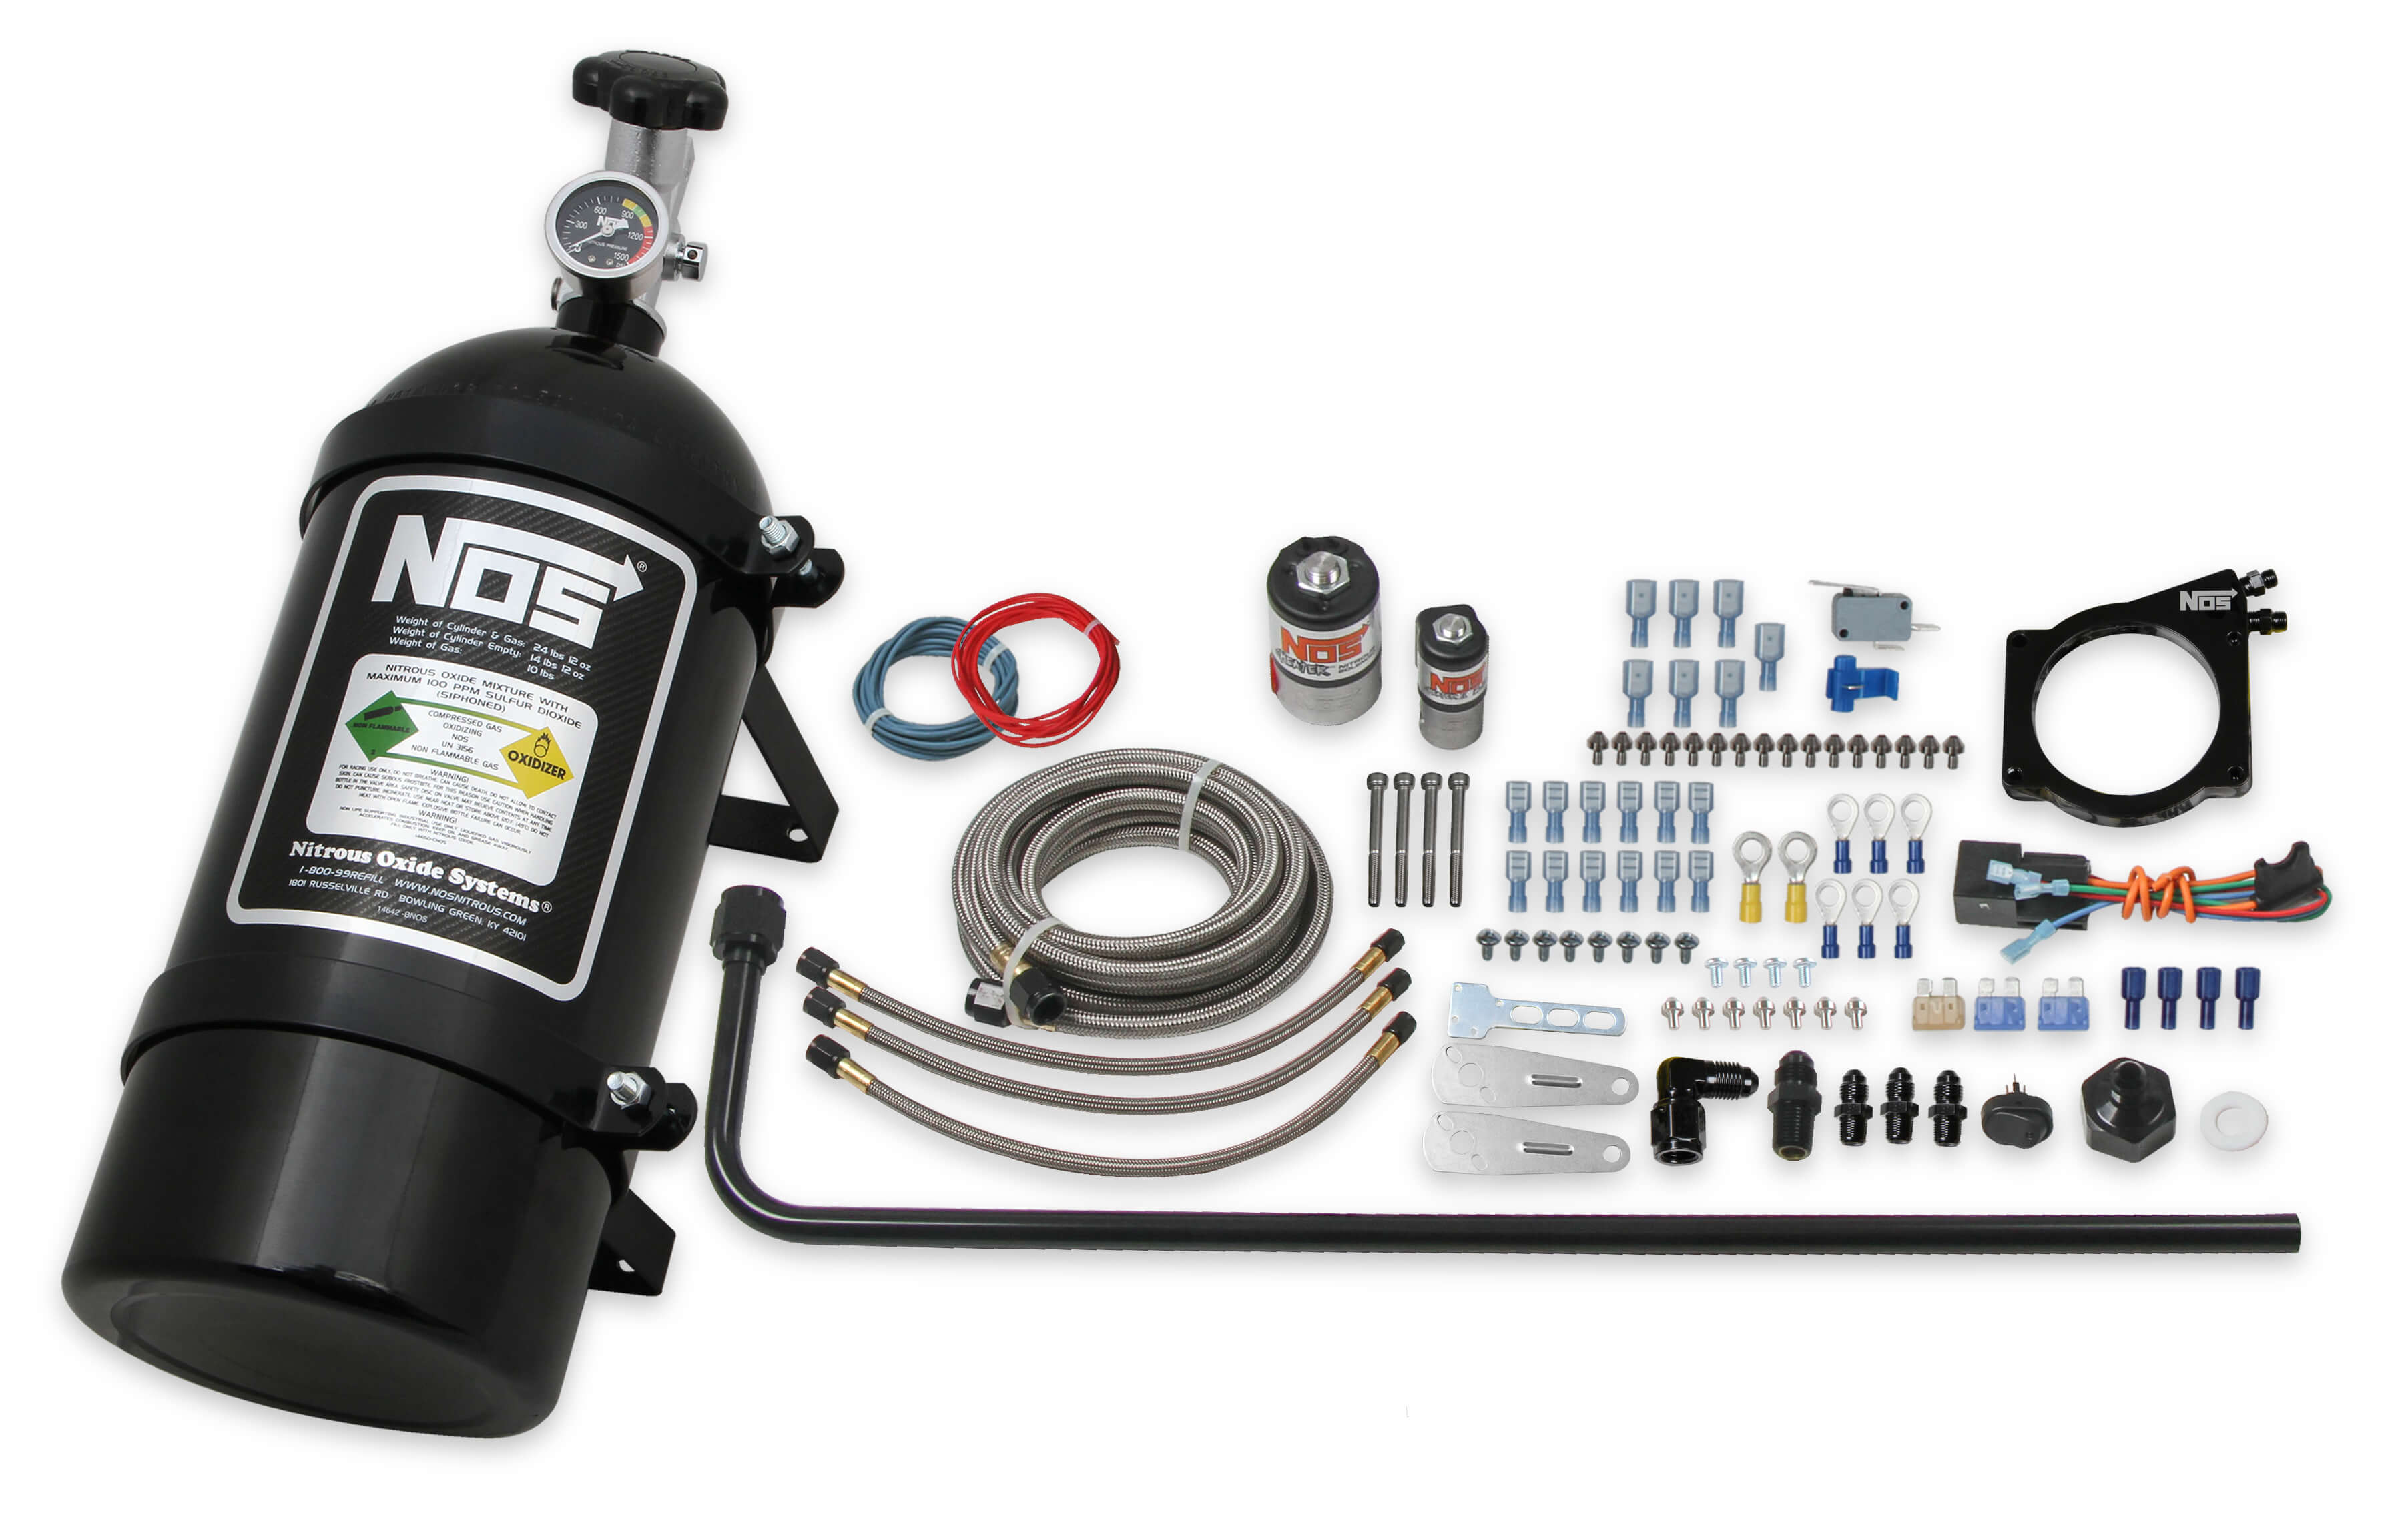 GM LS NOS 90mm Wet Nitrous System with 4-Bolt Cable Throttle Body - Black